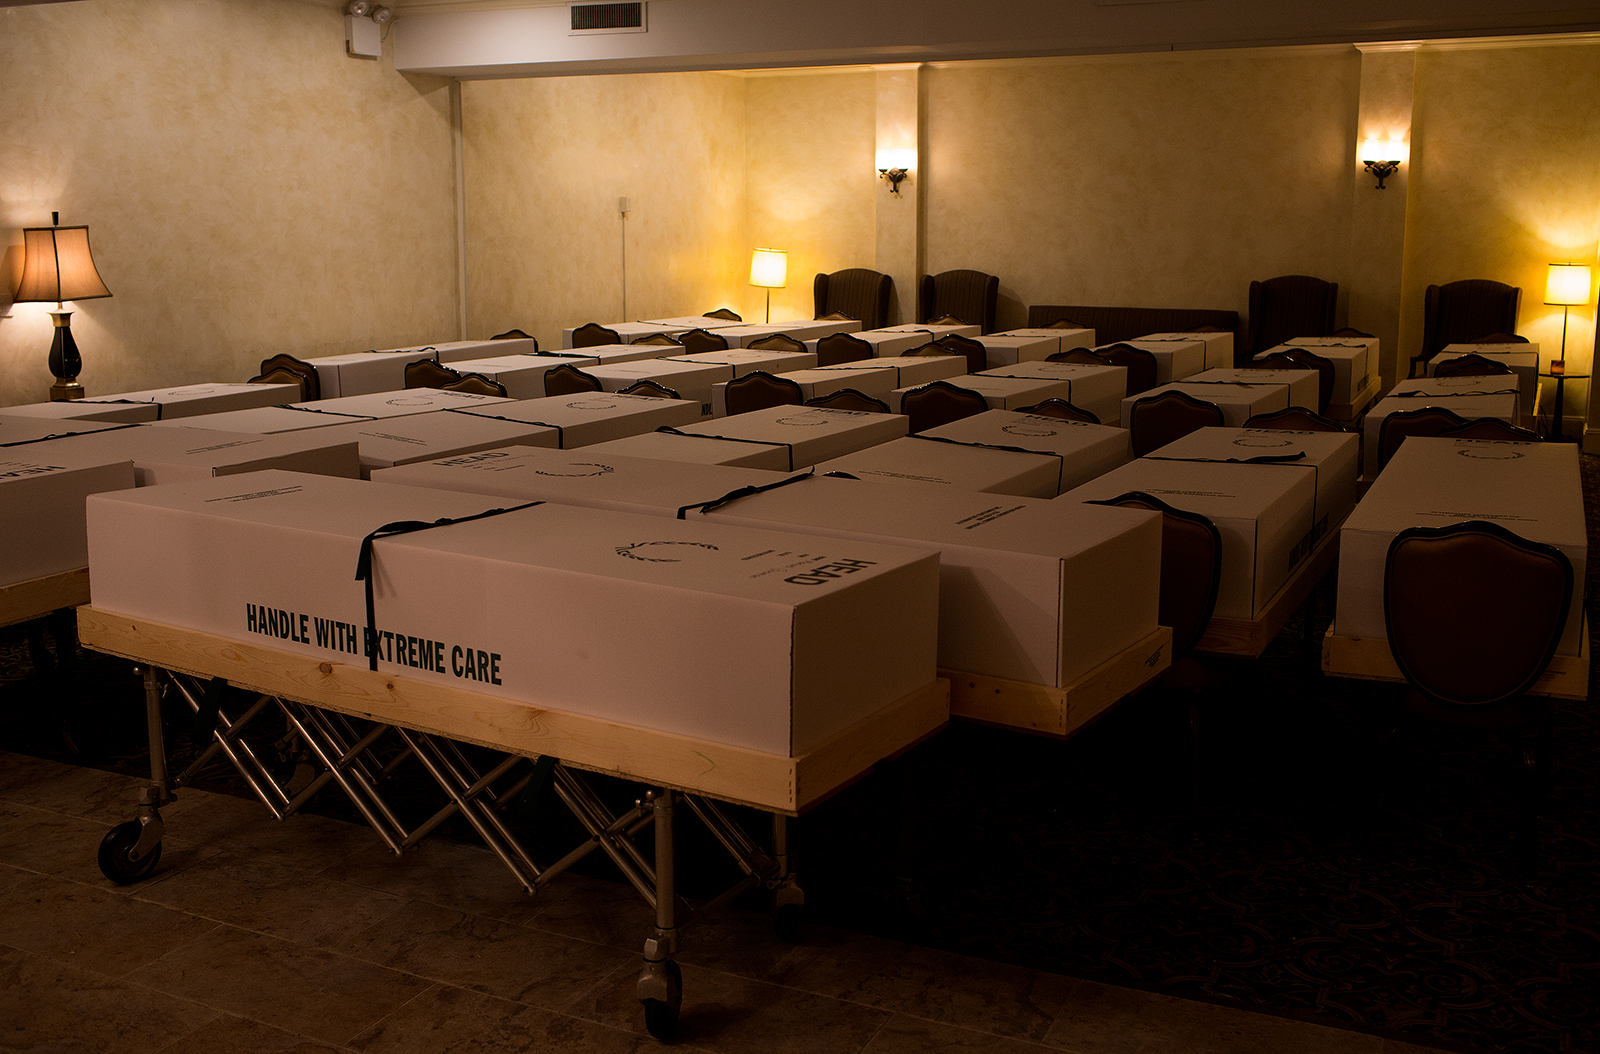 A funeral home in the epicenter of the COVID-19 pandemic deals with an excess of recent deaths because of the virus by storing bodies in the chapel before shipping to crematoriums and cemeteries in Queens, New York, on May 11.